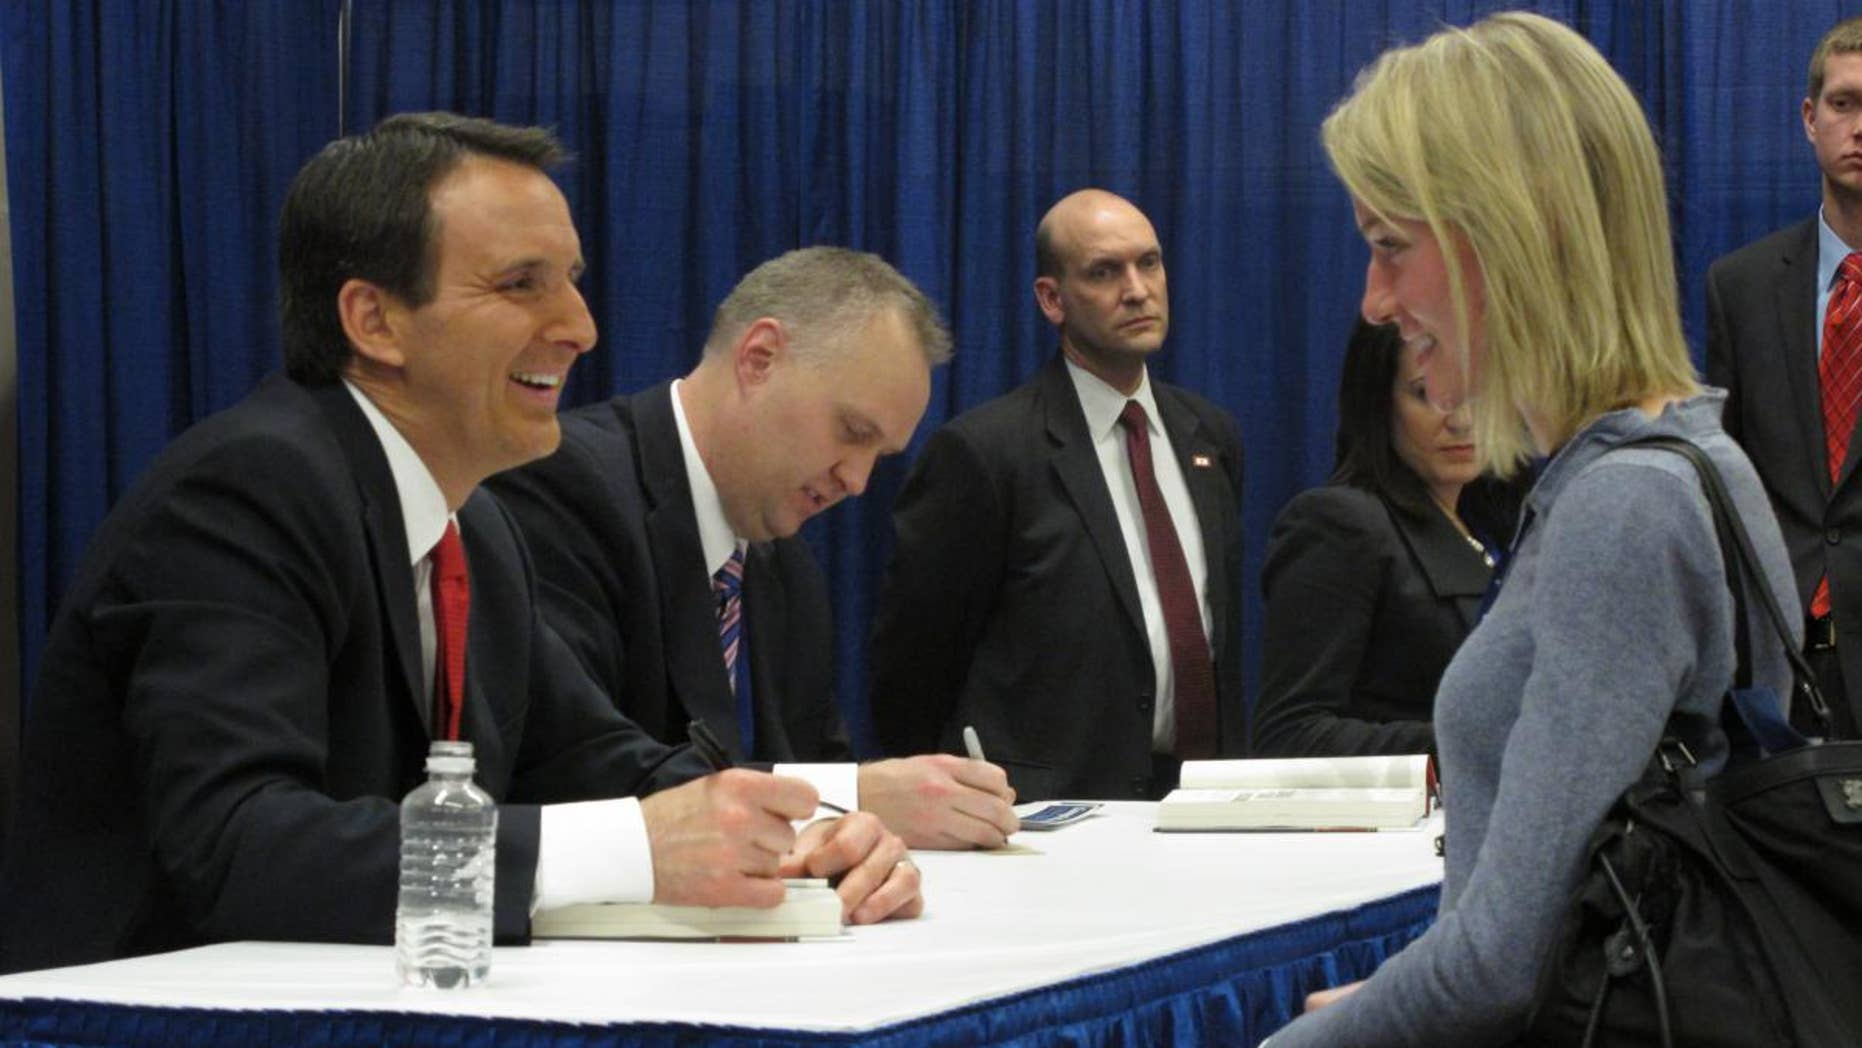 Former Minnesota Gov. Tim Pawlenty (R) signs books at the Conservative Political Action Conference Febuary 11. (Fox News Photo)